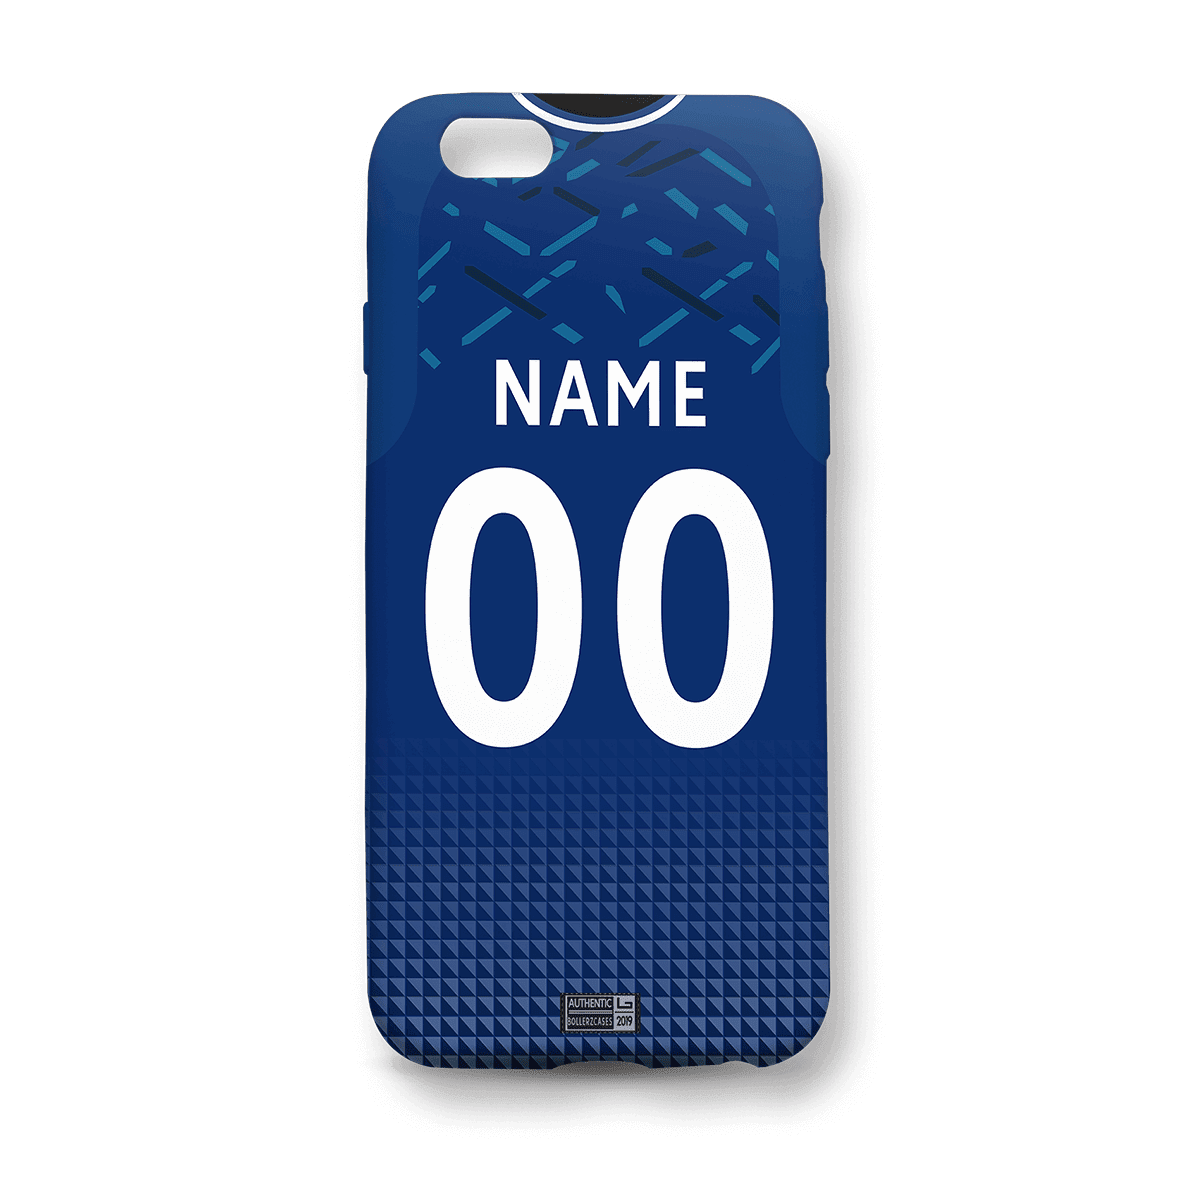 Everton 19-20 Home kit phone case